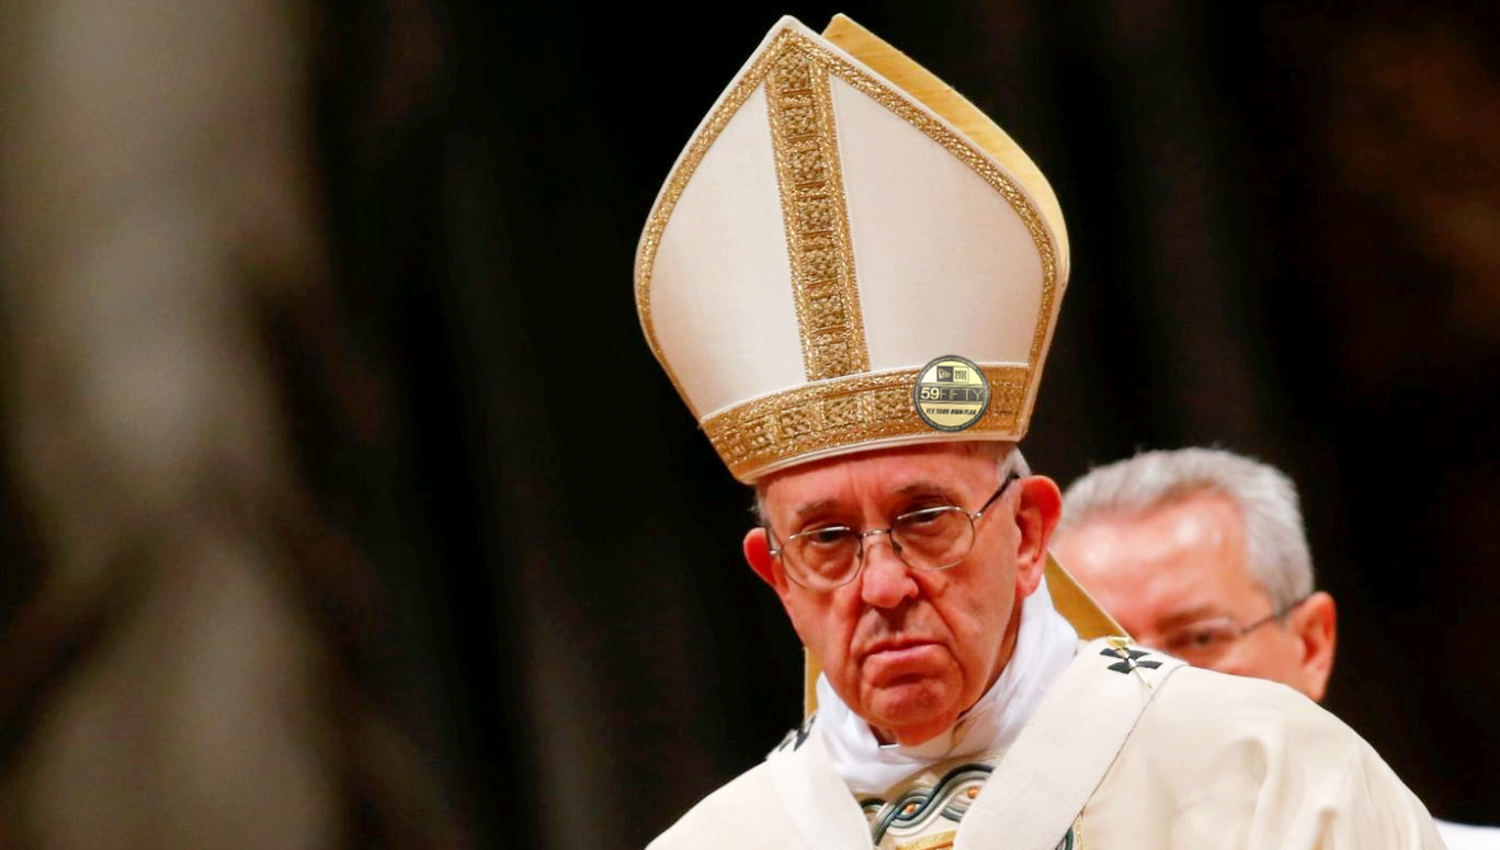 Pope Leaves Factory Sticker On Hat To Garner Street Cred Pope Silly Hats Hats